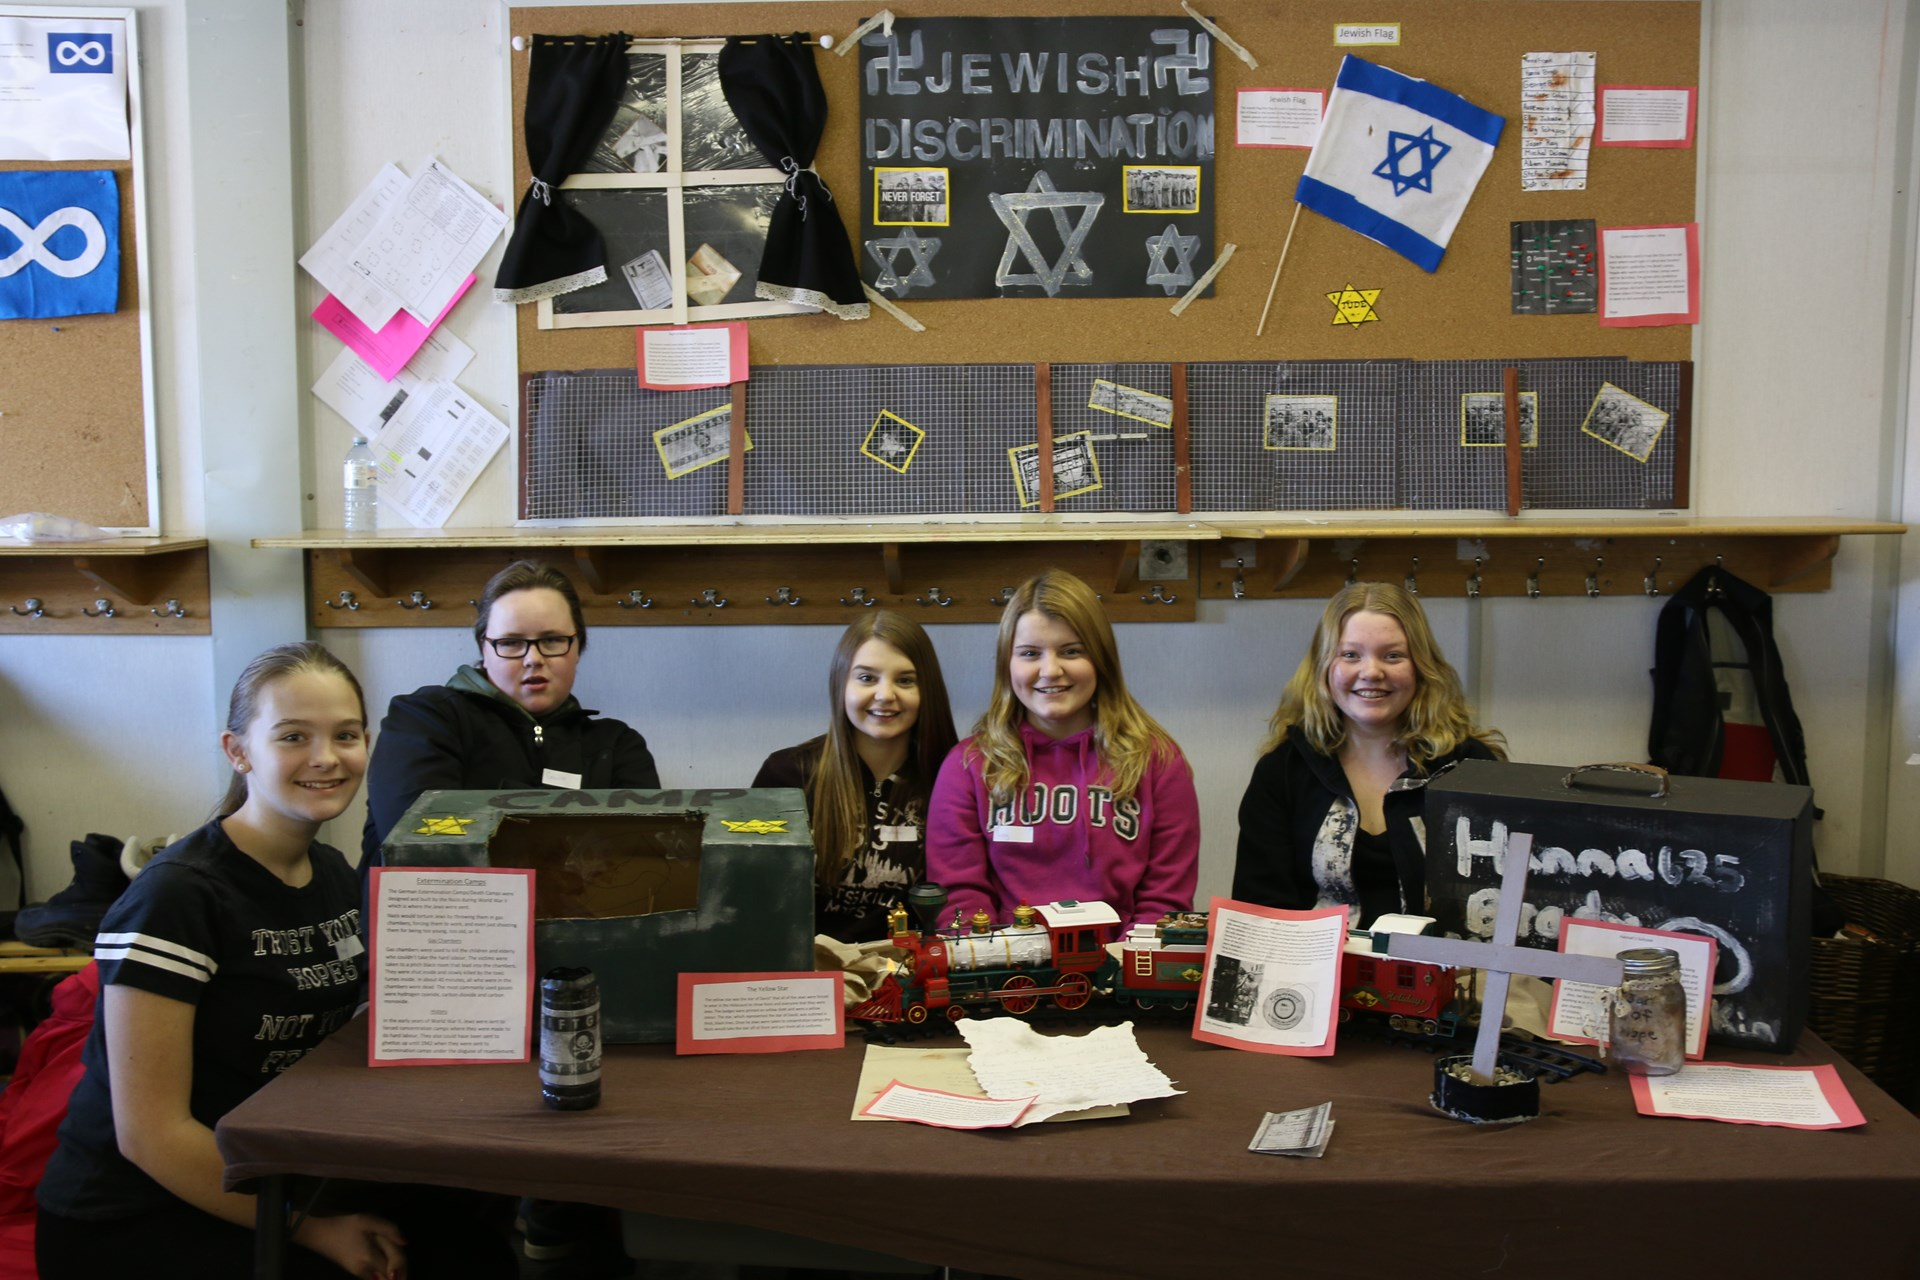 Students at the Jewish discrimination table